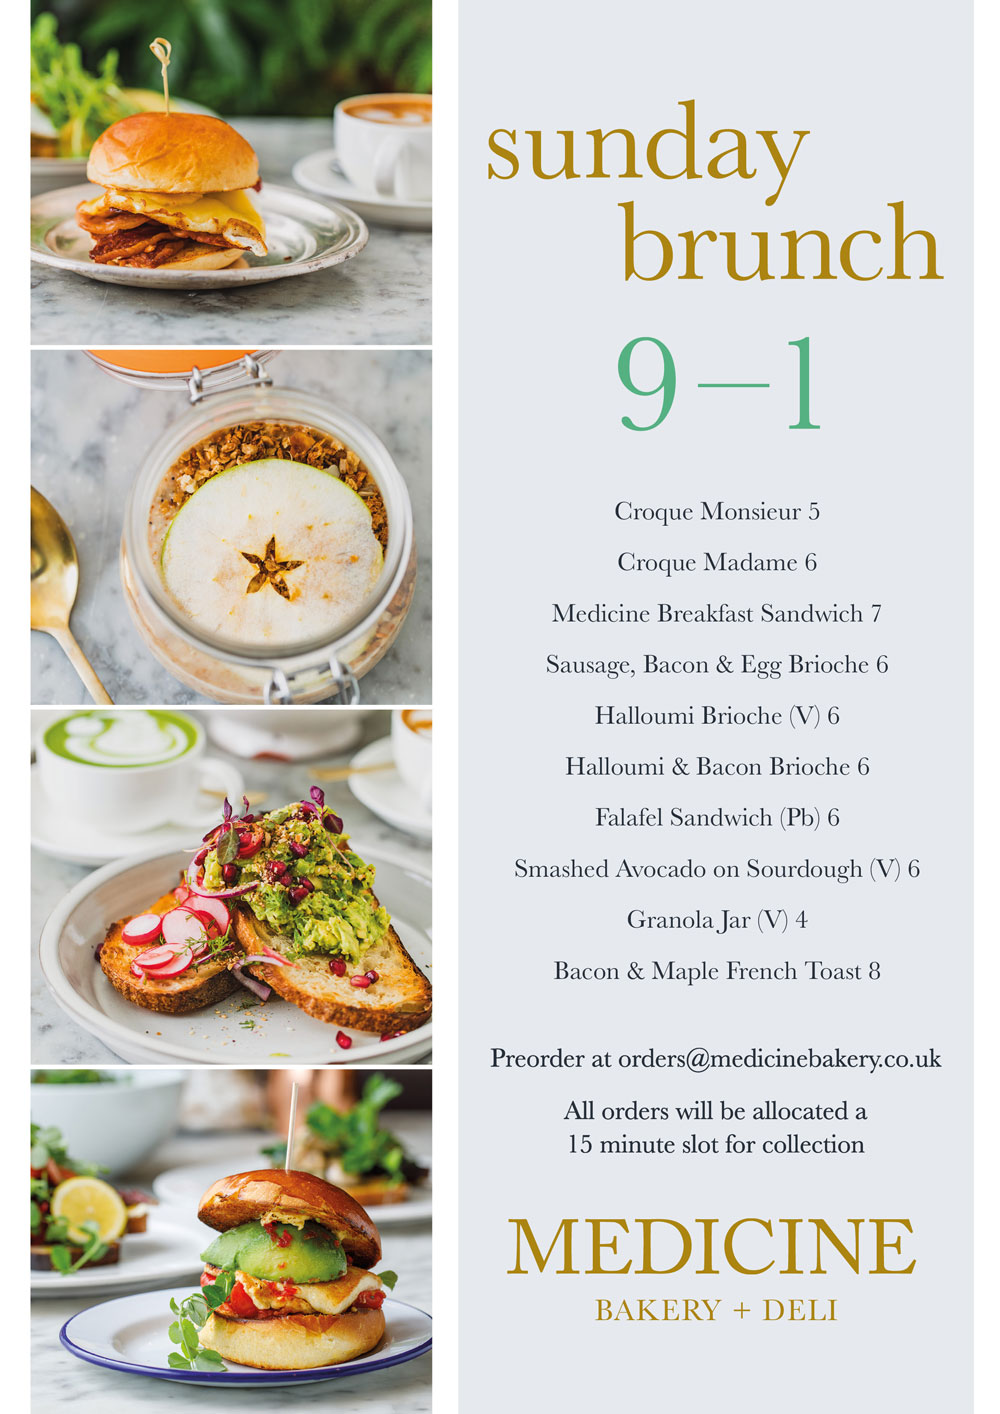 Medicine Sunday Brunch menu